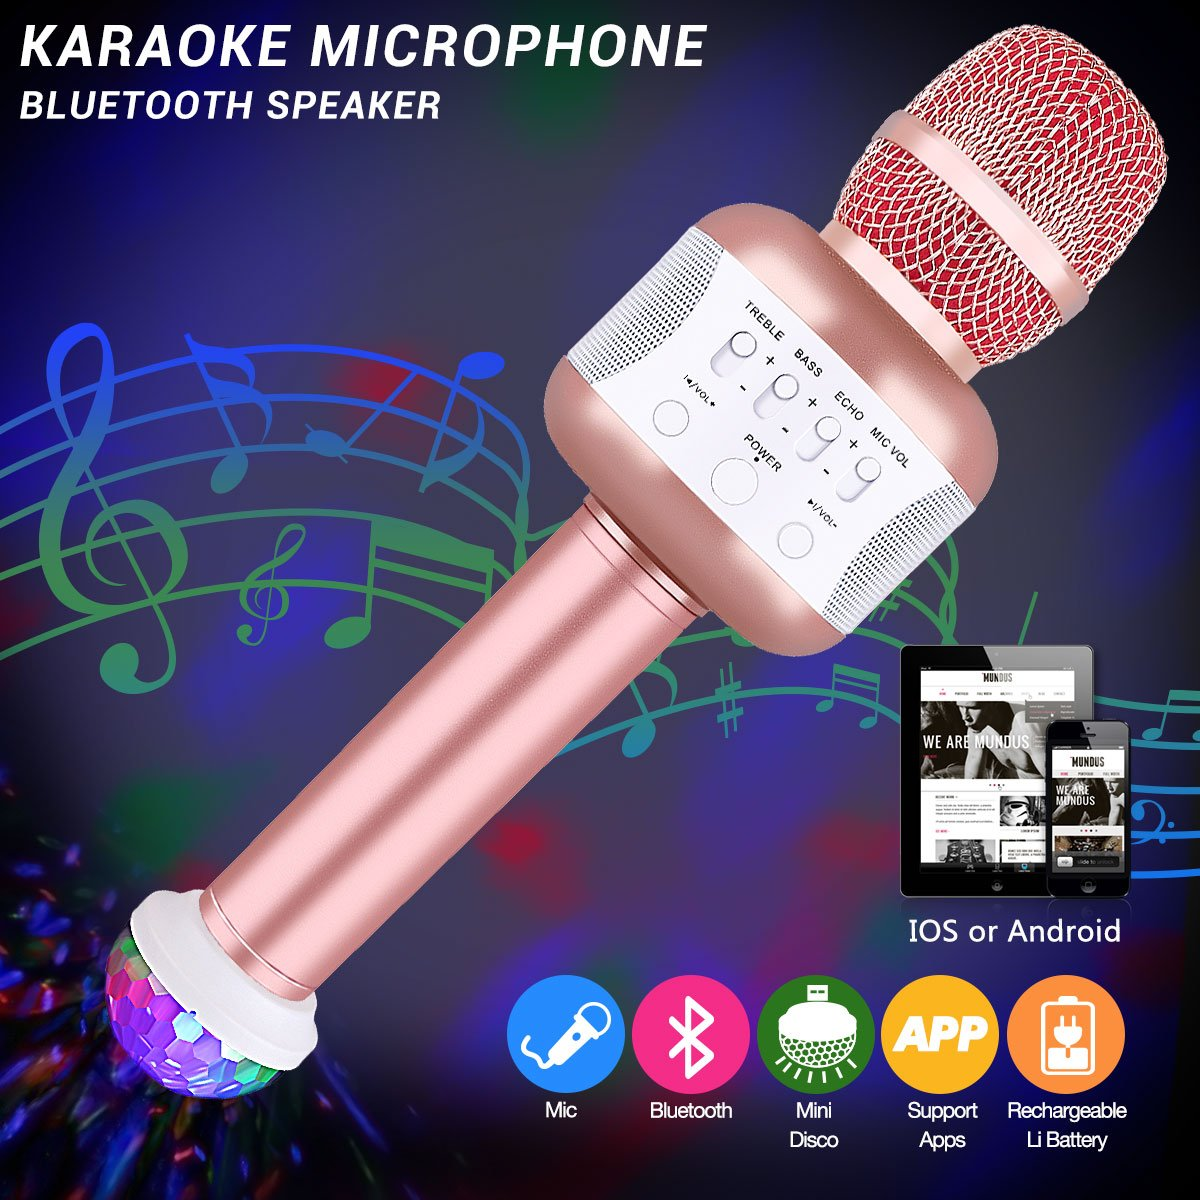 Karaoke Microphones, Microphone With Disco Lights Wireless Karaoke Microphone Battery Microphone Wireless Installation For The Reception Of Singing And Language As A Speaker For PC, Laptop, Iphone, Ipod, Ipad, Android Smartphones Party Karaoke Microphone (